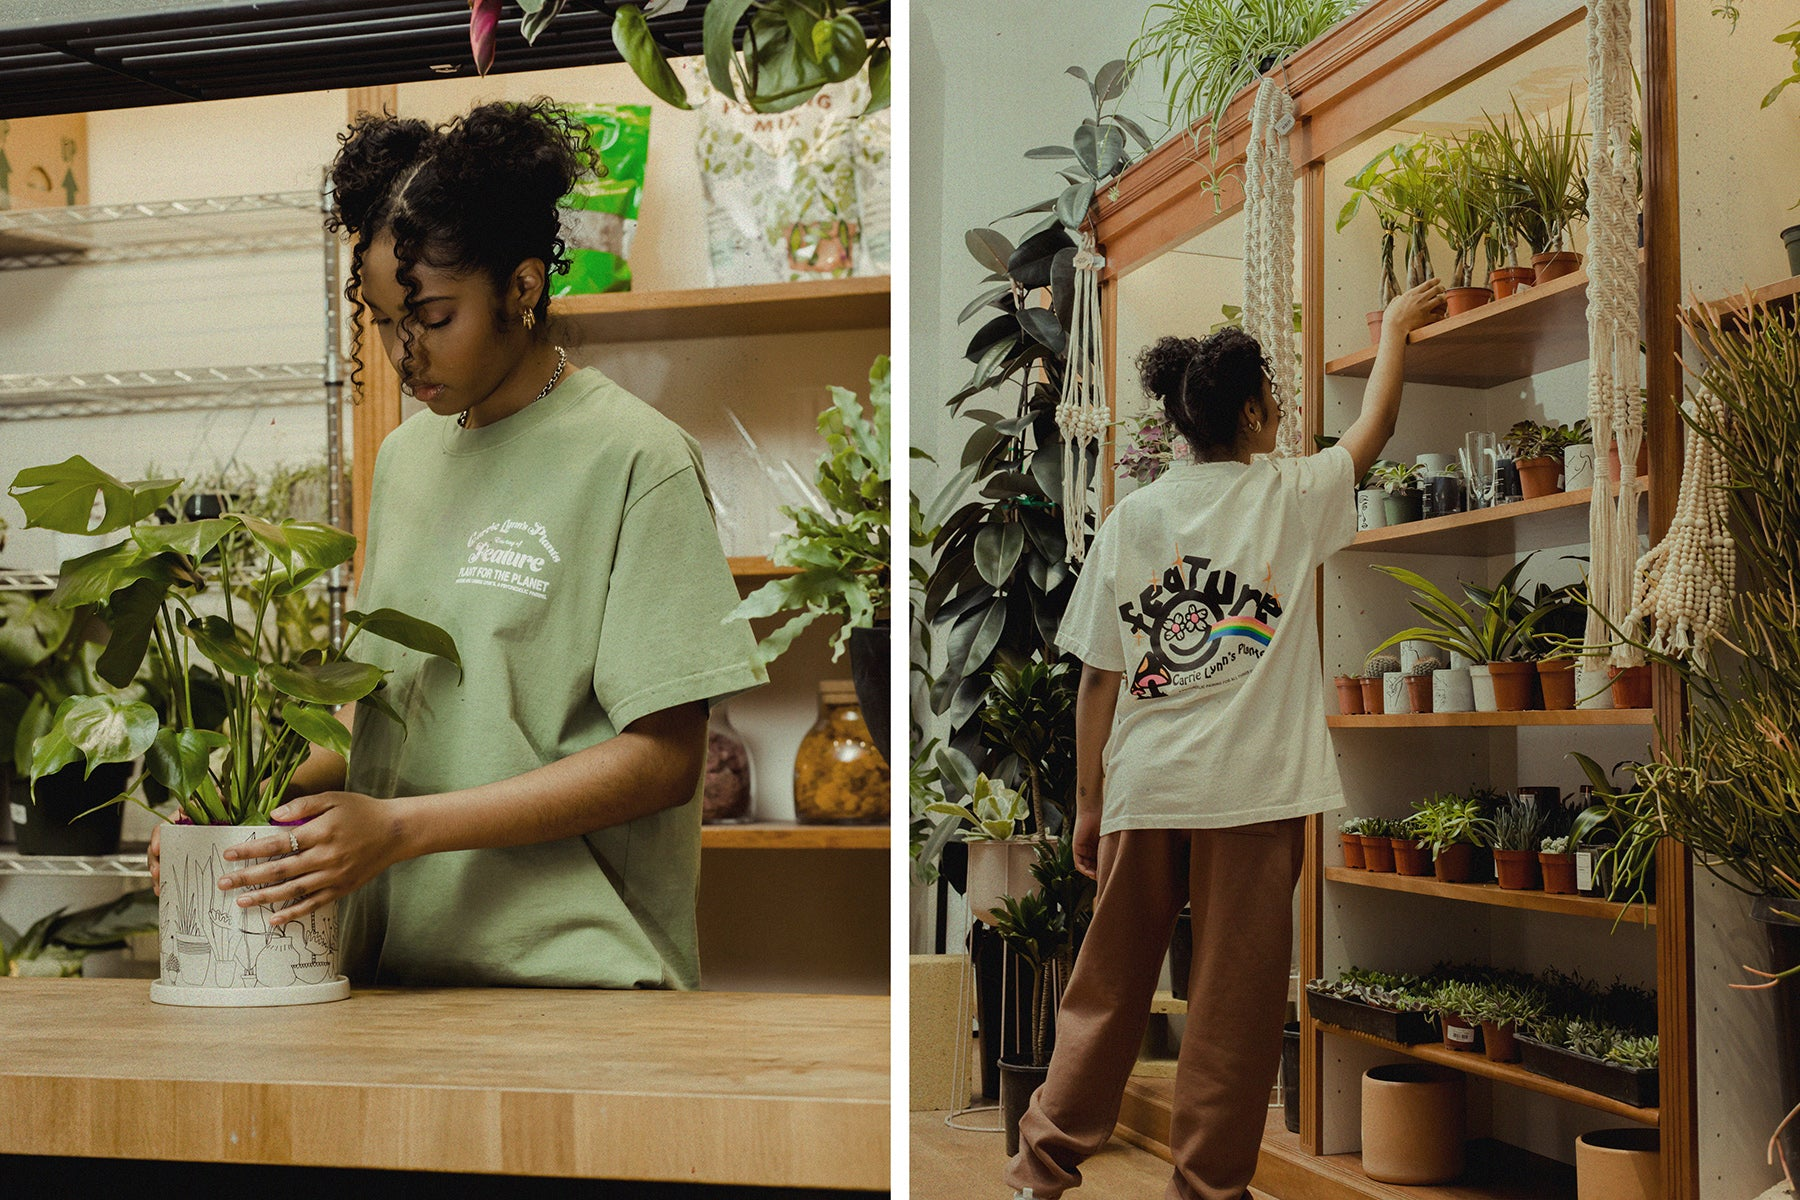 Carrie_Lynns_Plants_x_Feature_-_Feature_LV_-_11511.jpg?v=1615505324